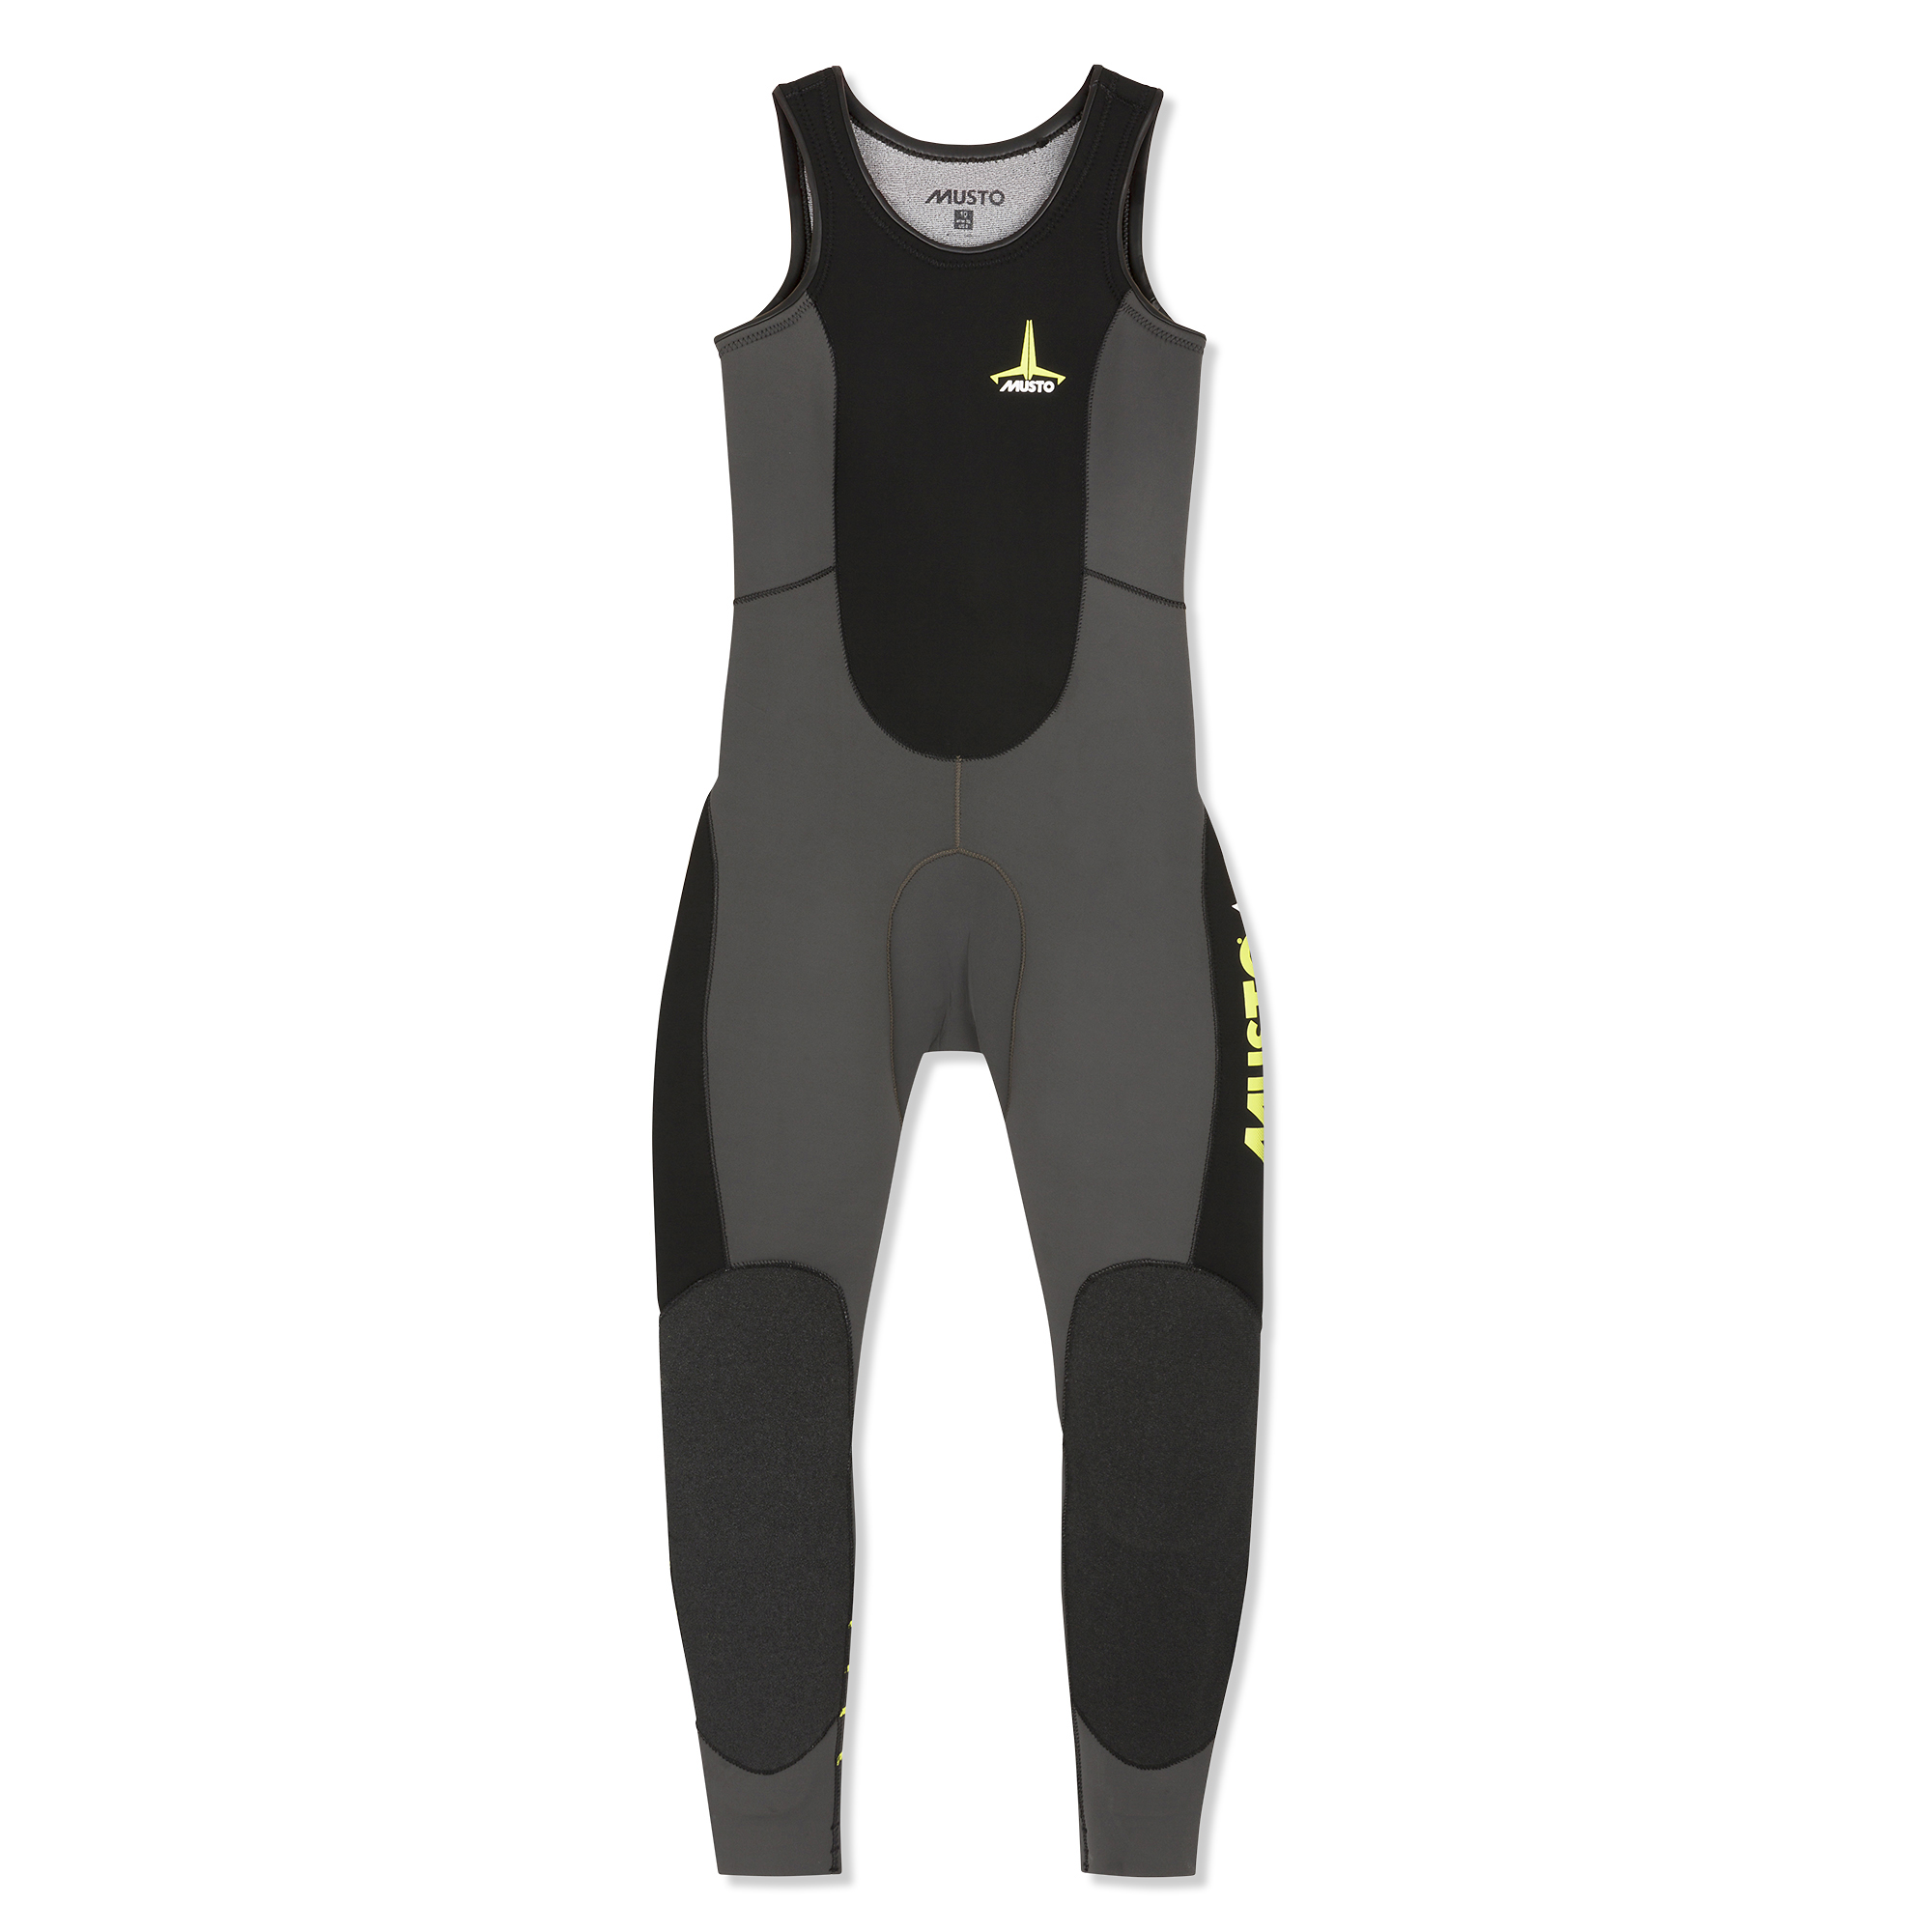 MUSTO WOMENS FOILING THERMOHOT IMPACT WETSUIT (SWWT003)